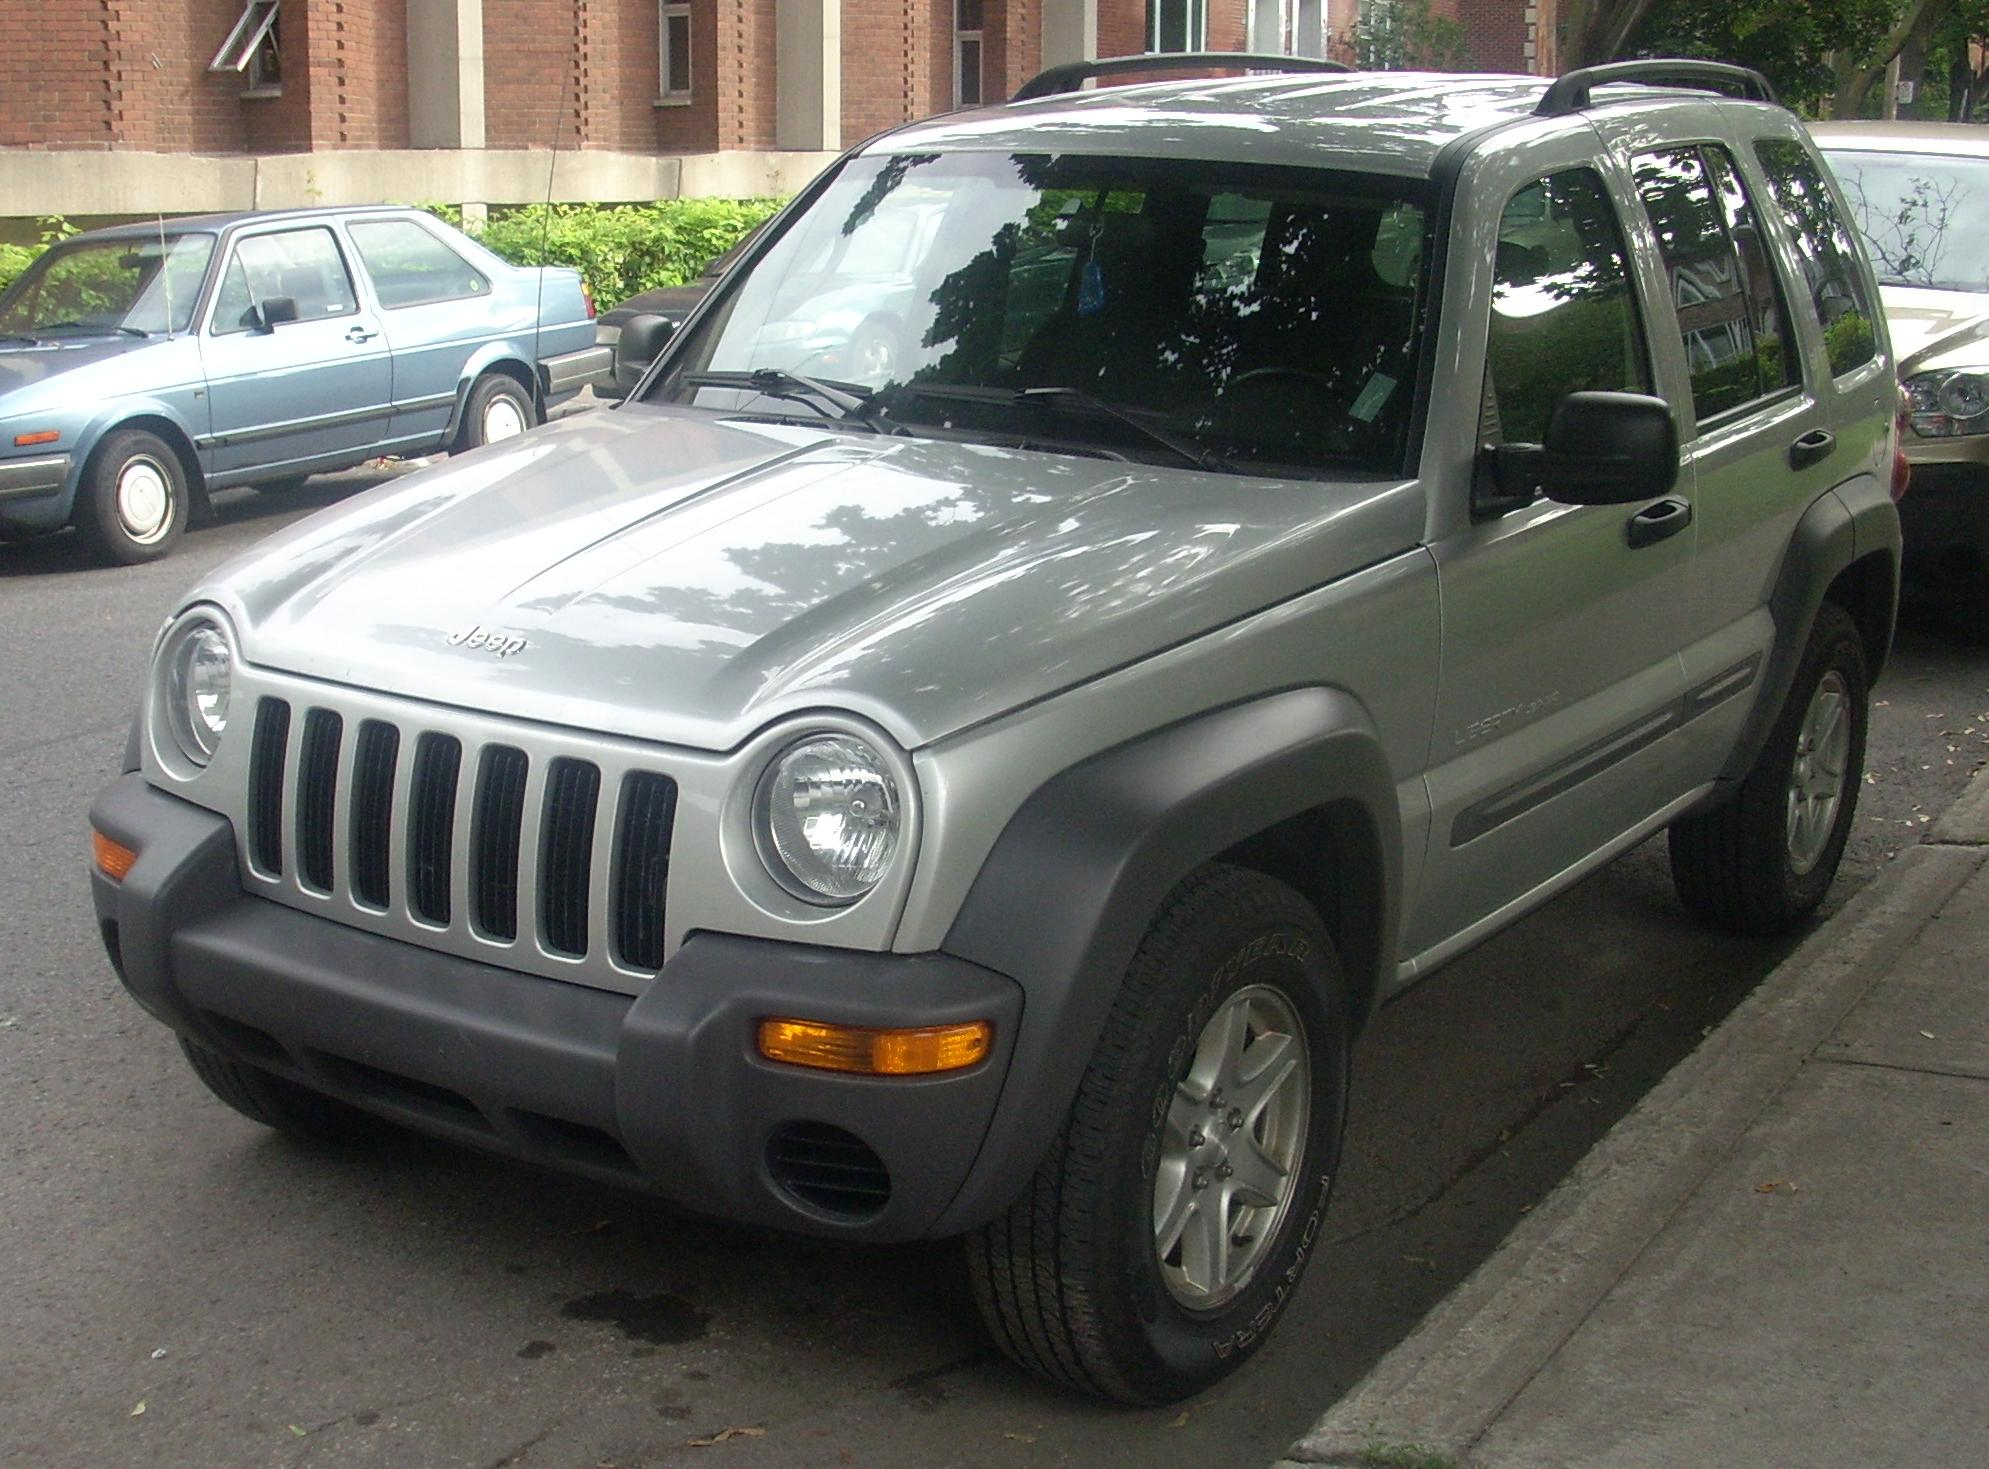 file 2002 2004 jeep liberty sport jpg wikimedia commons. Black Bedroom Furniture Sets. Home Design Ideas